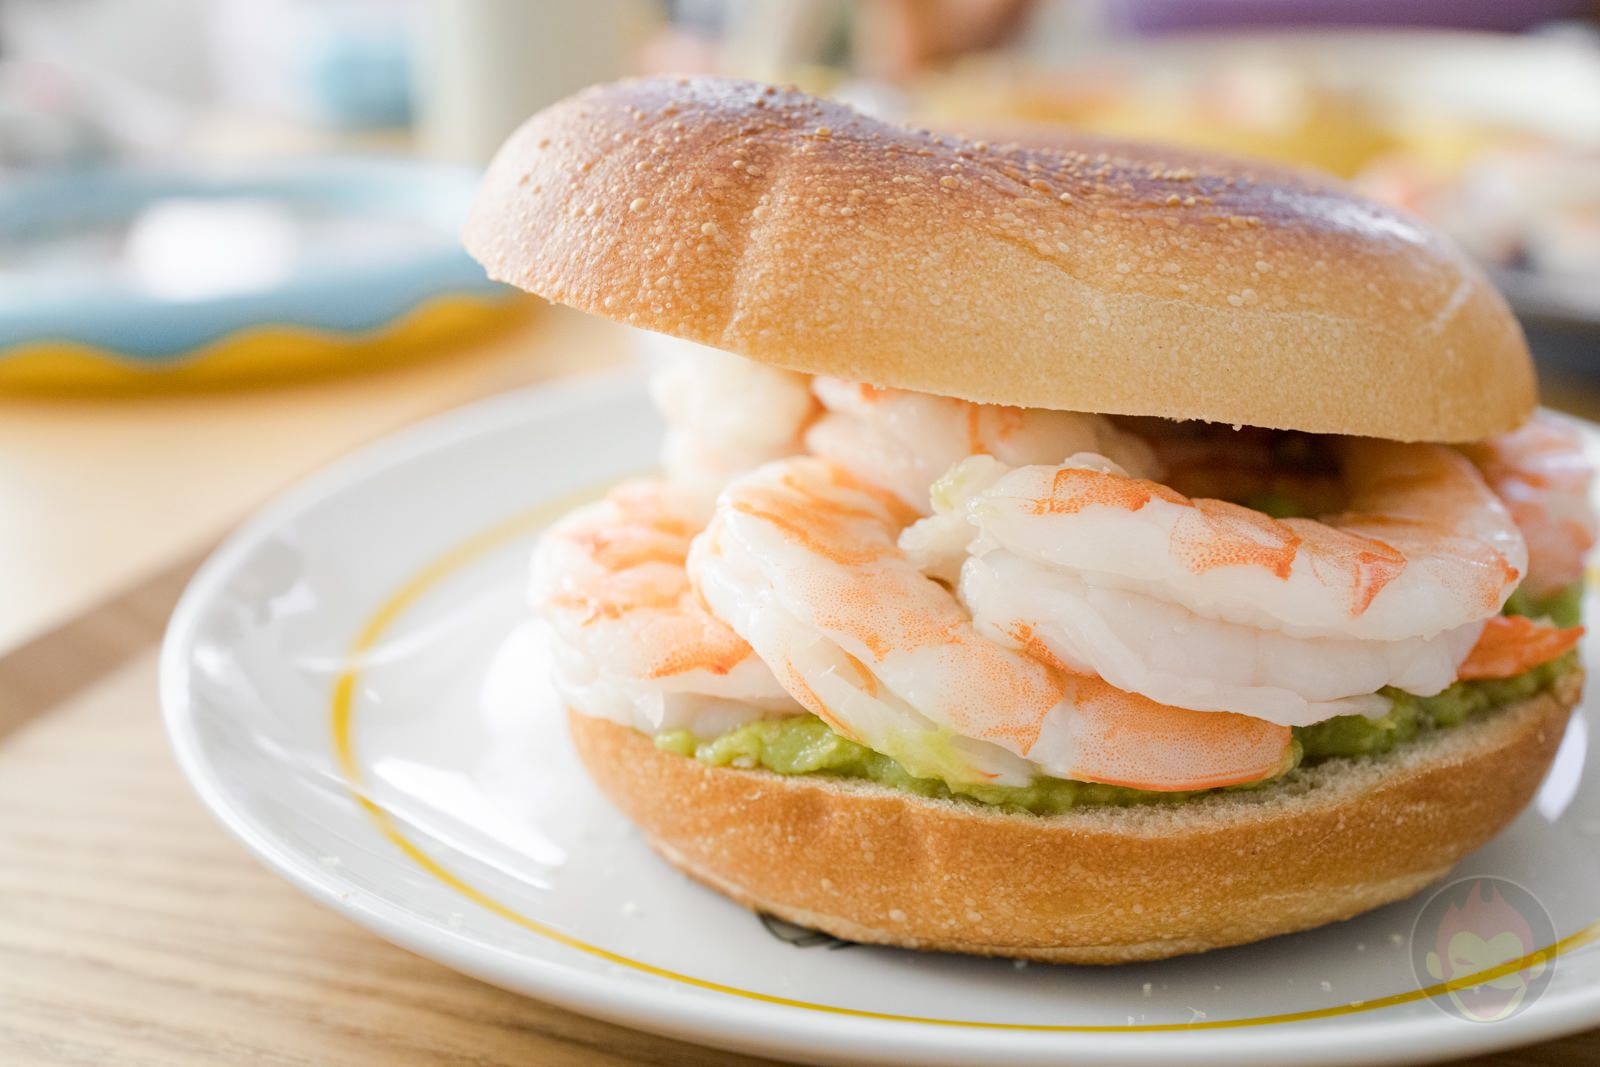 Costco Shrimp Avocado Guacamole Bagel Sandwich 13